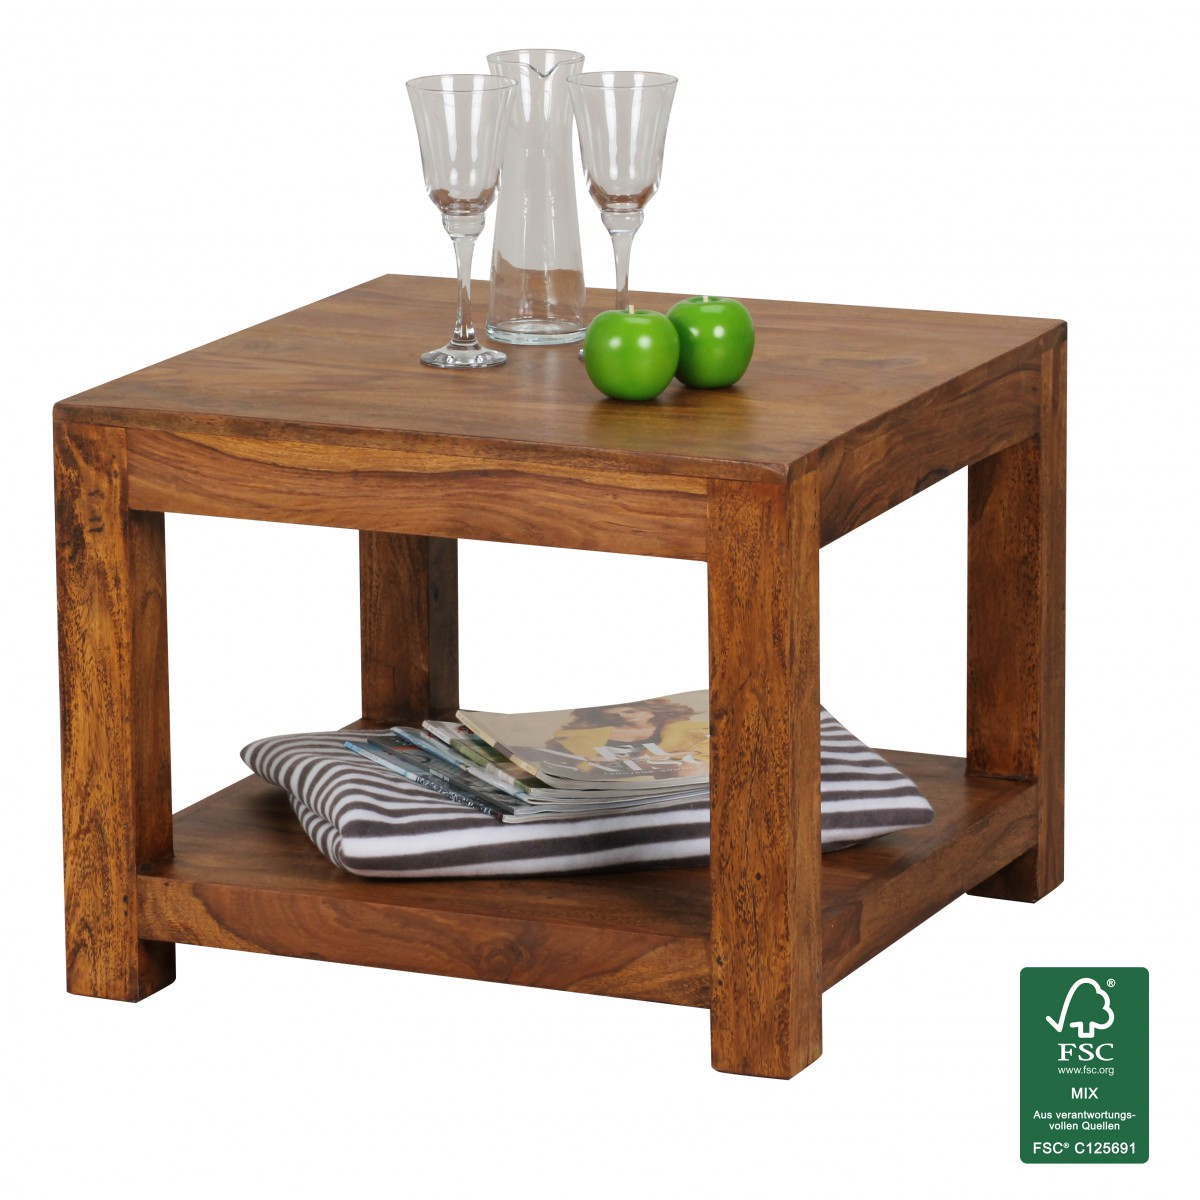 Wohnling bois massif table palissandre caf 60 x 60 x 45 for Table en palissandre massif